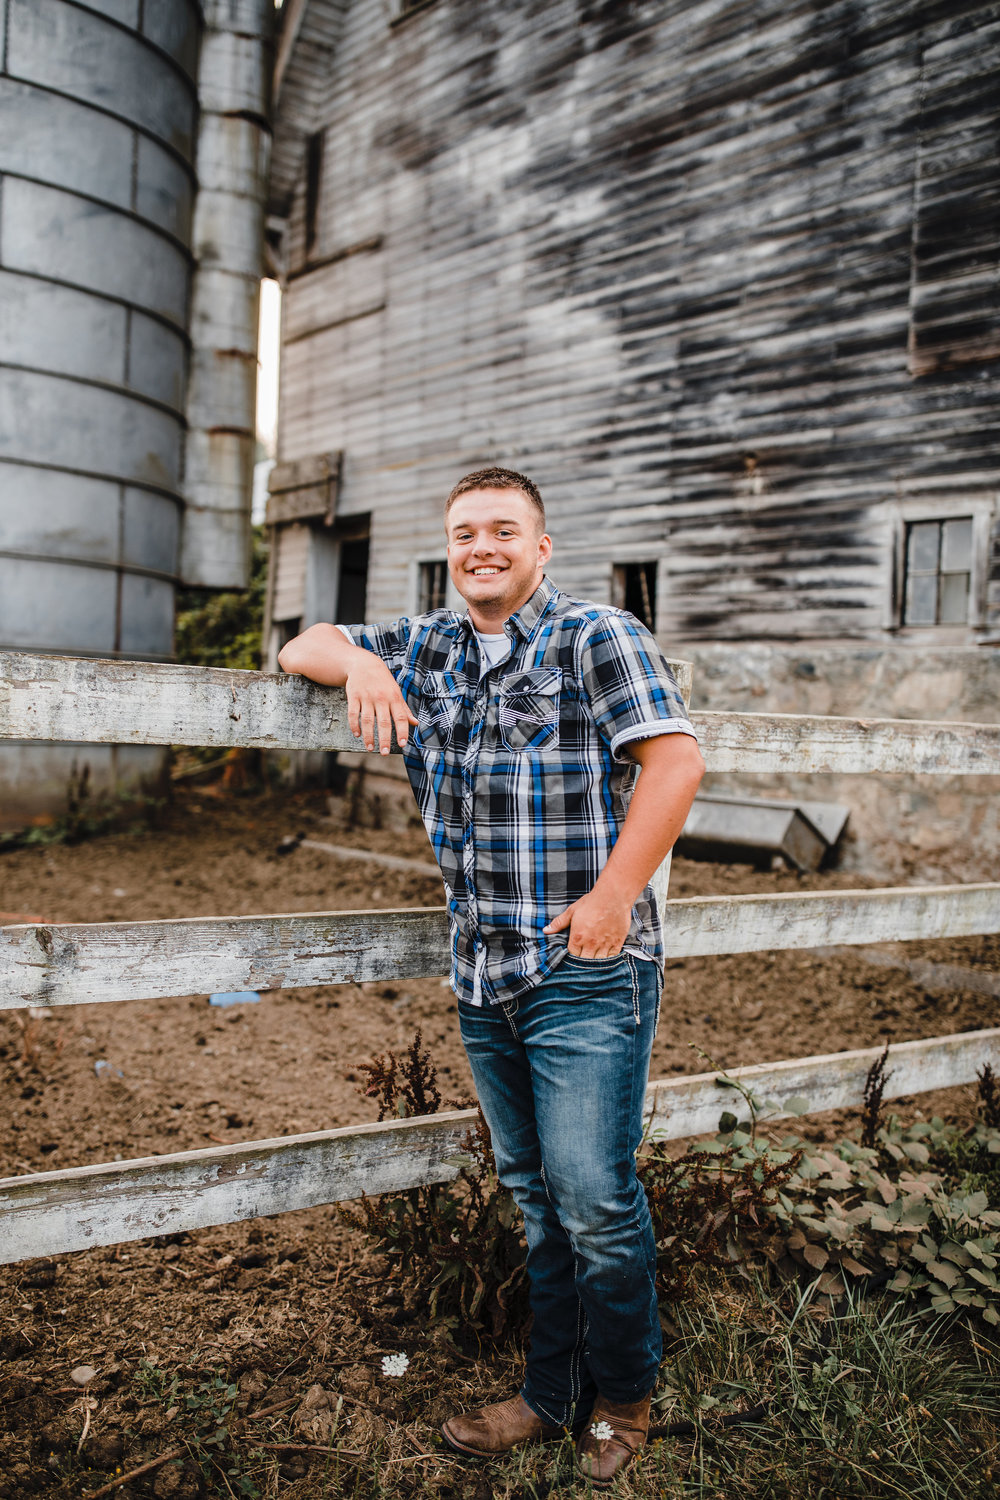 professional portrait photographer olympia washington overcast rustic barn fence leaning